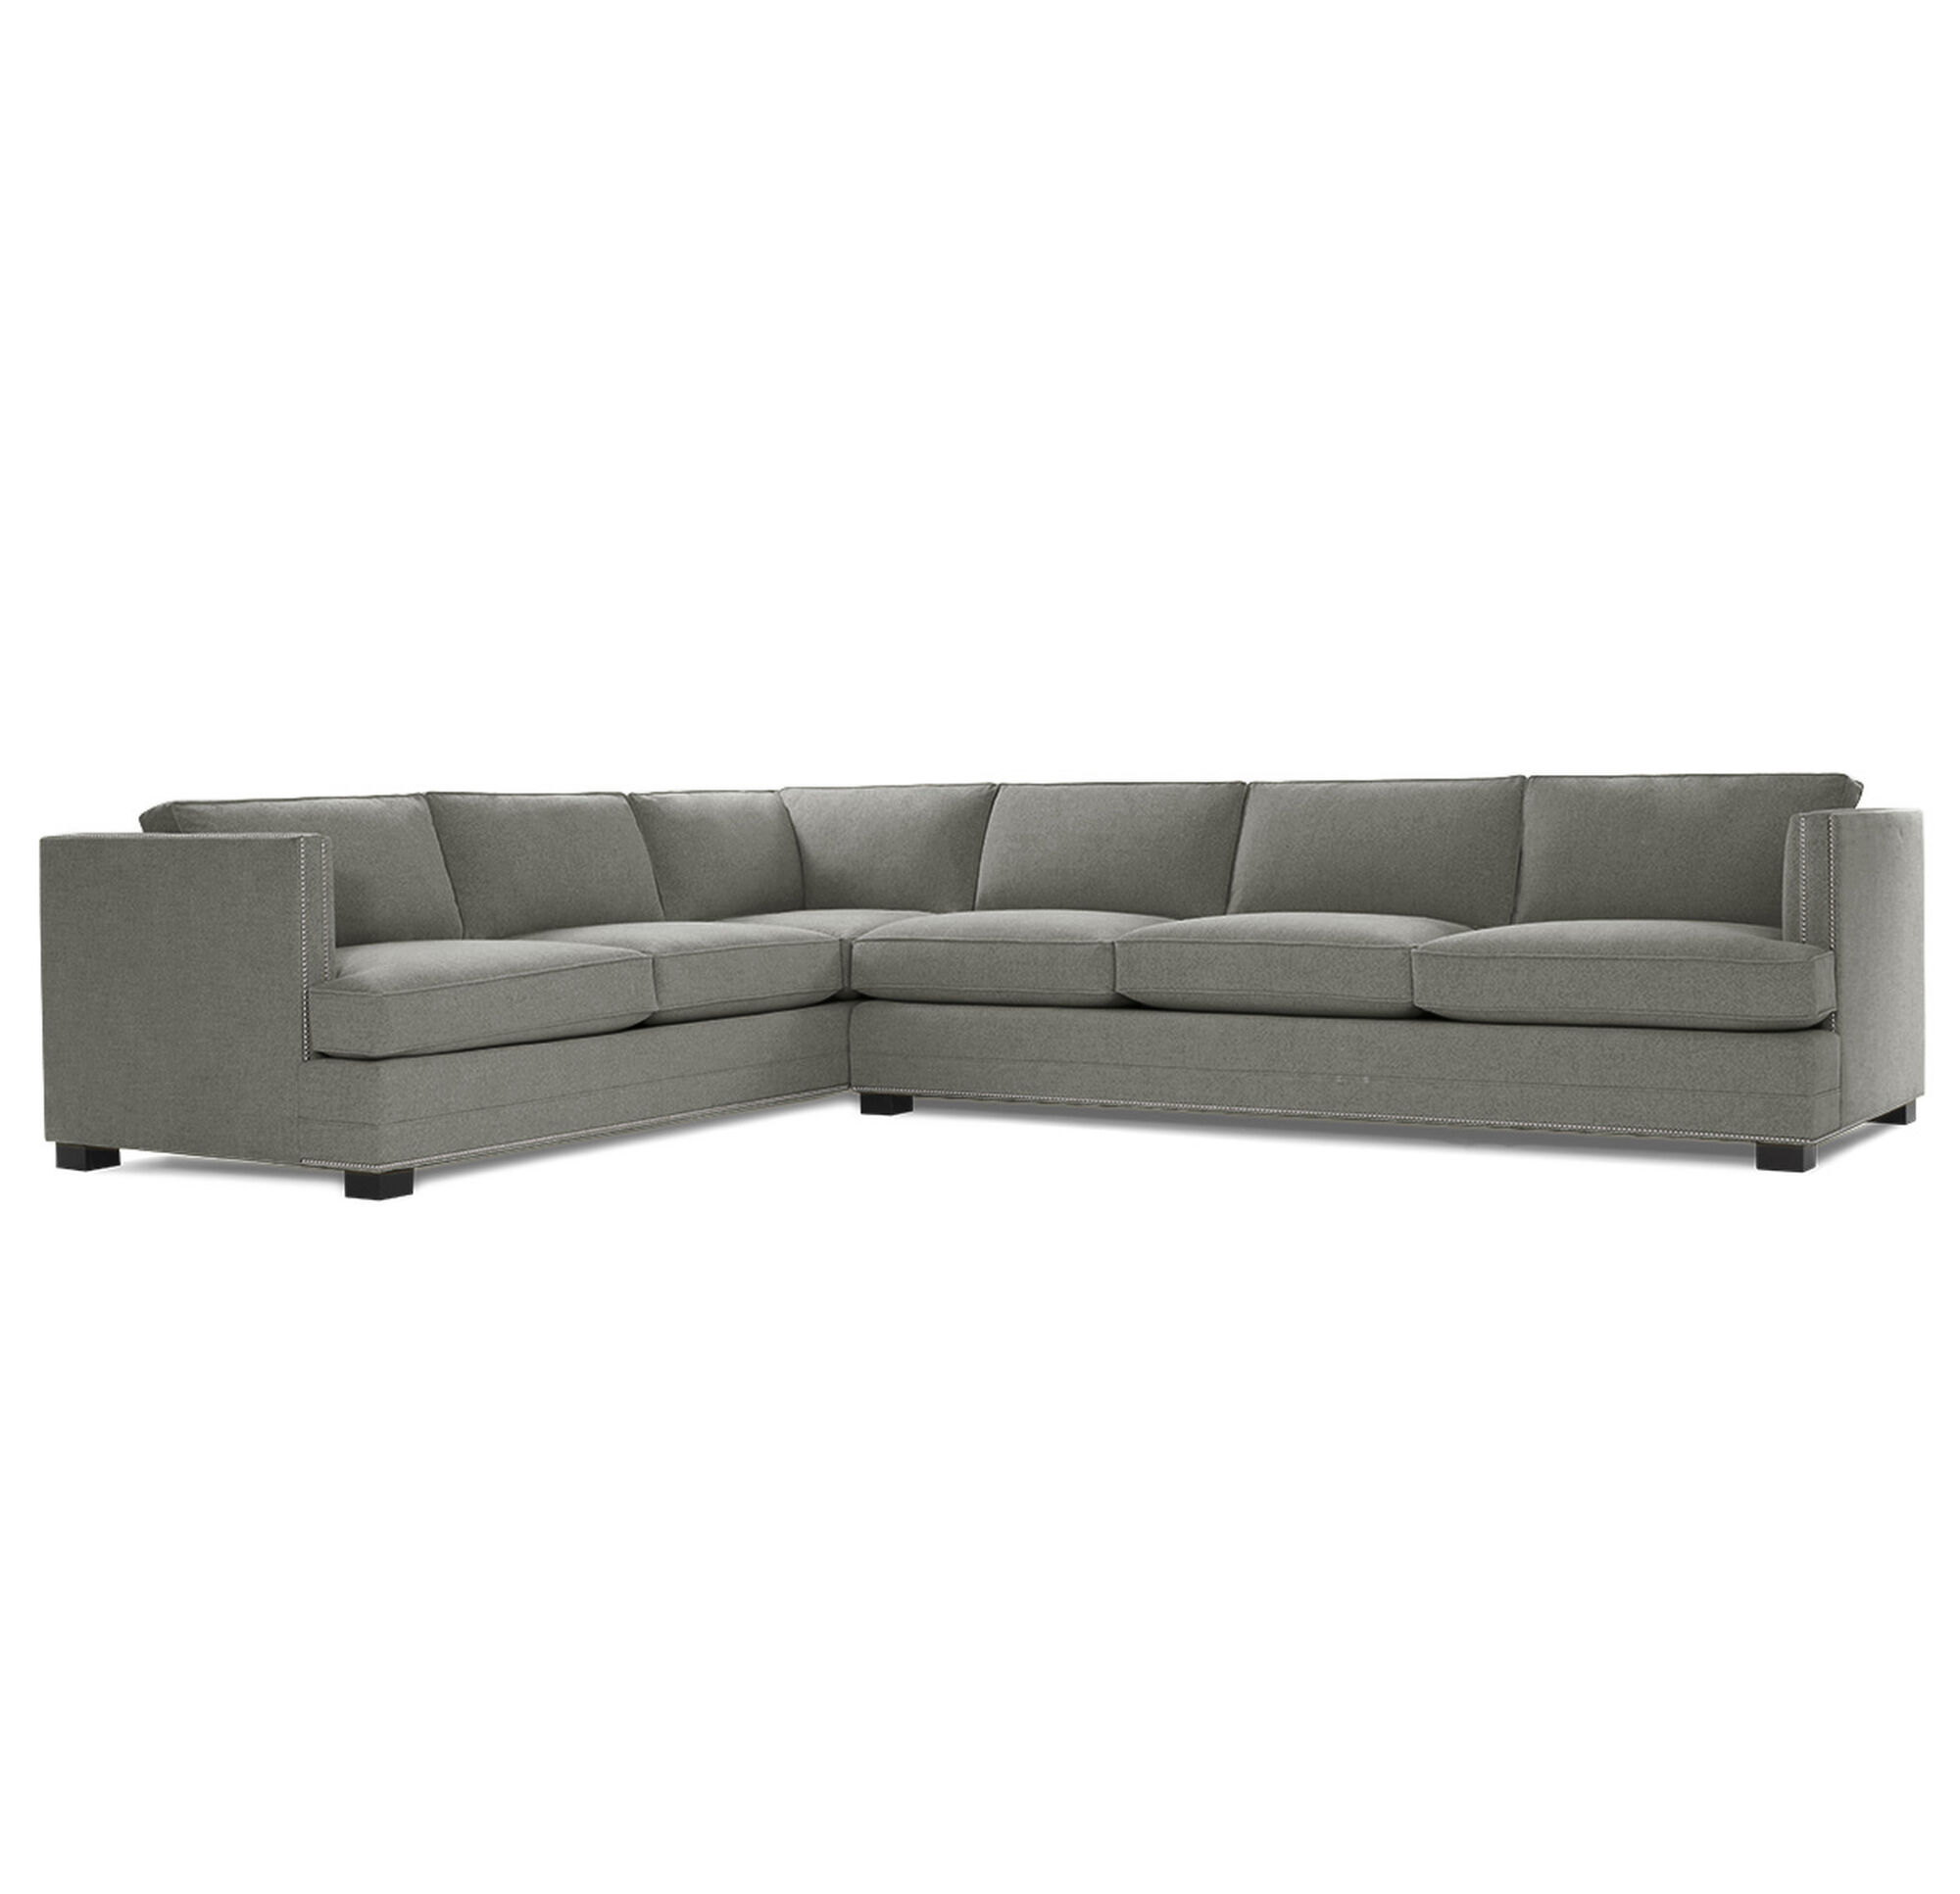 Keaton Shelter Right Arm Sectional